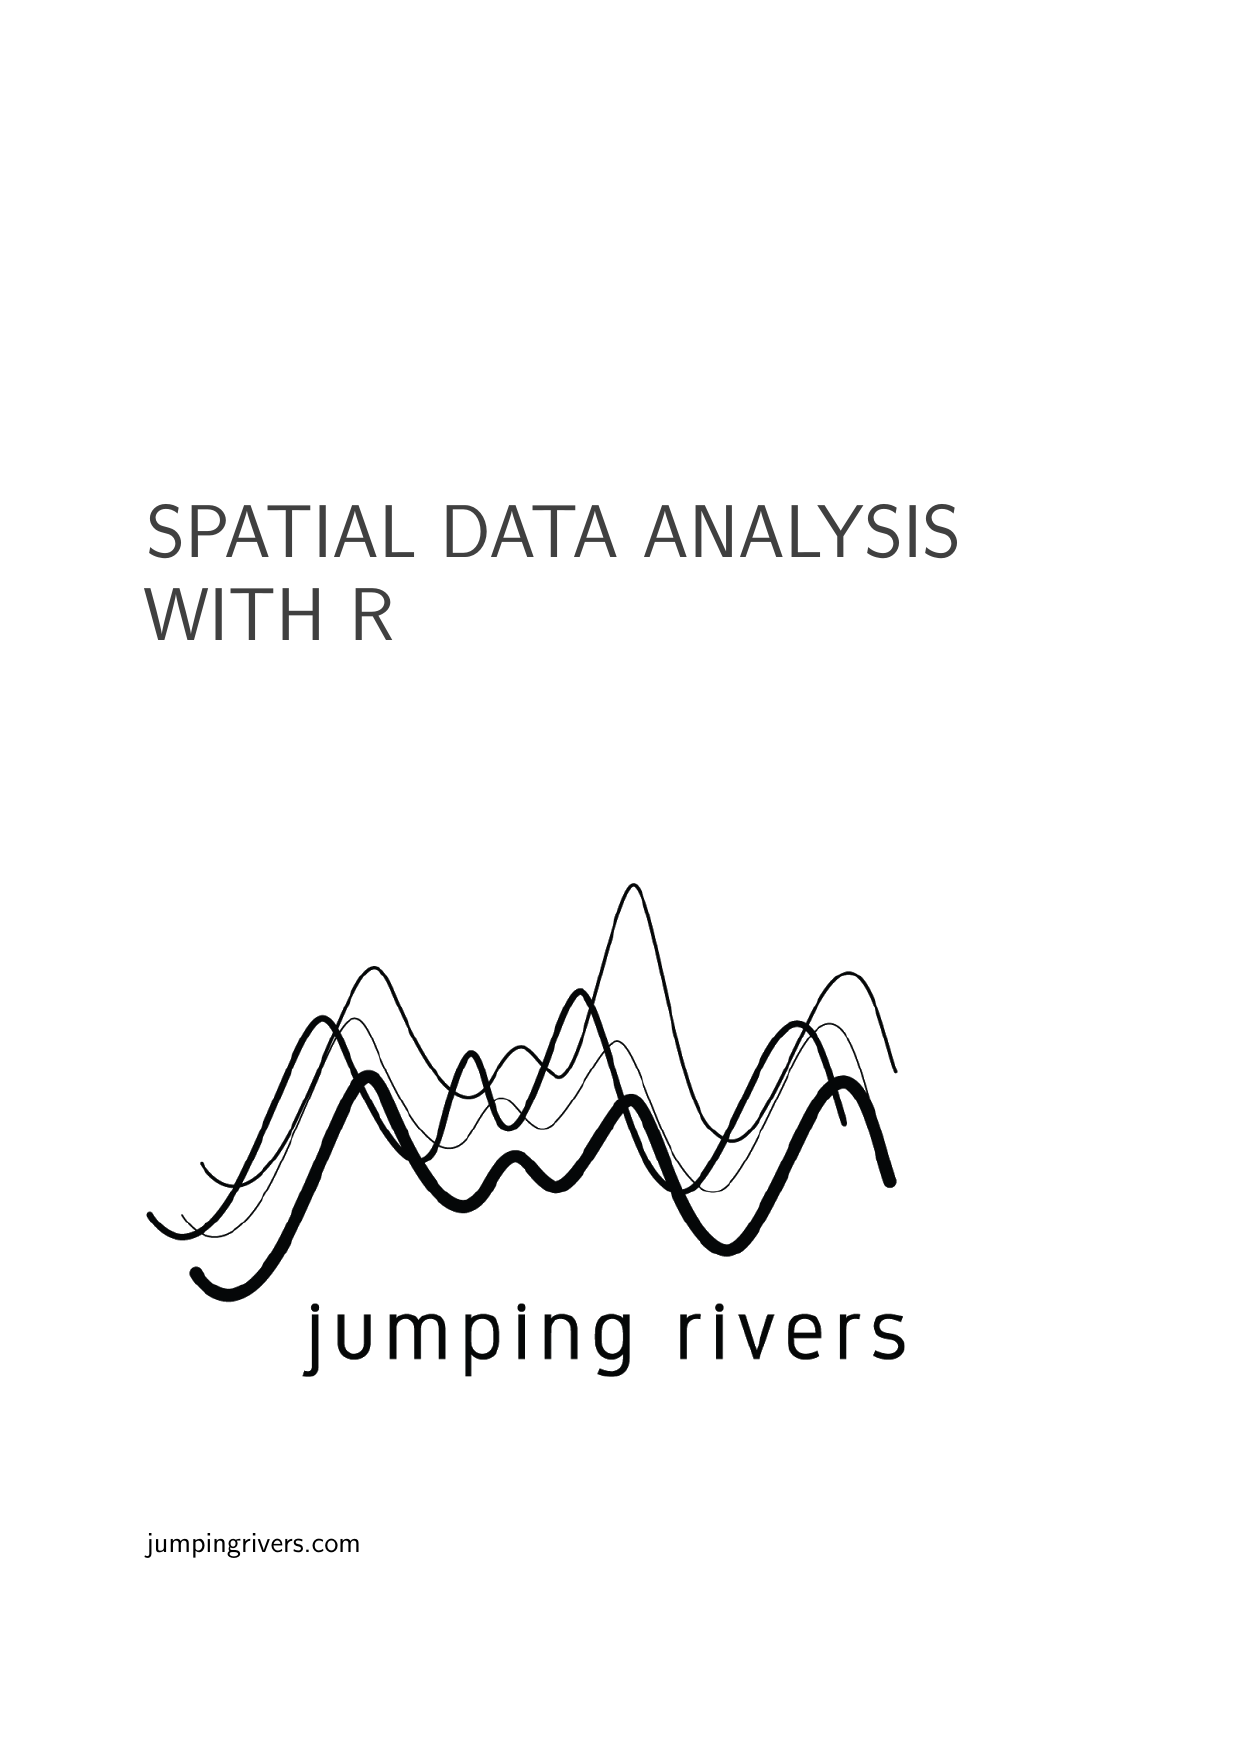 Example course material for 'Spatial Data Analysis with R